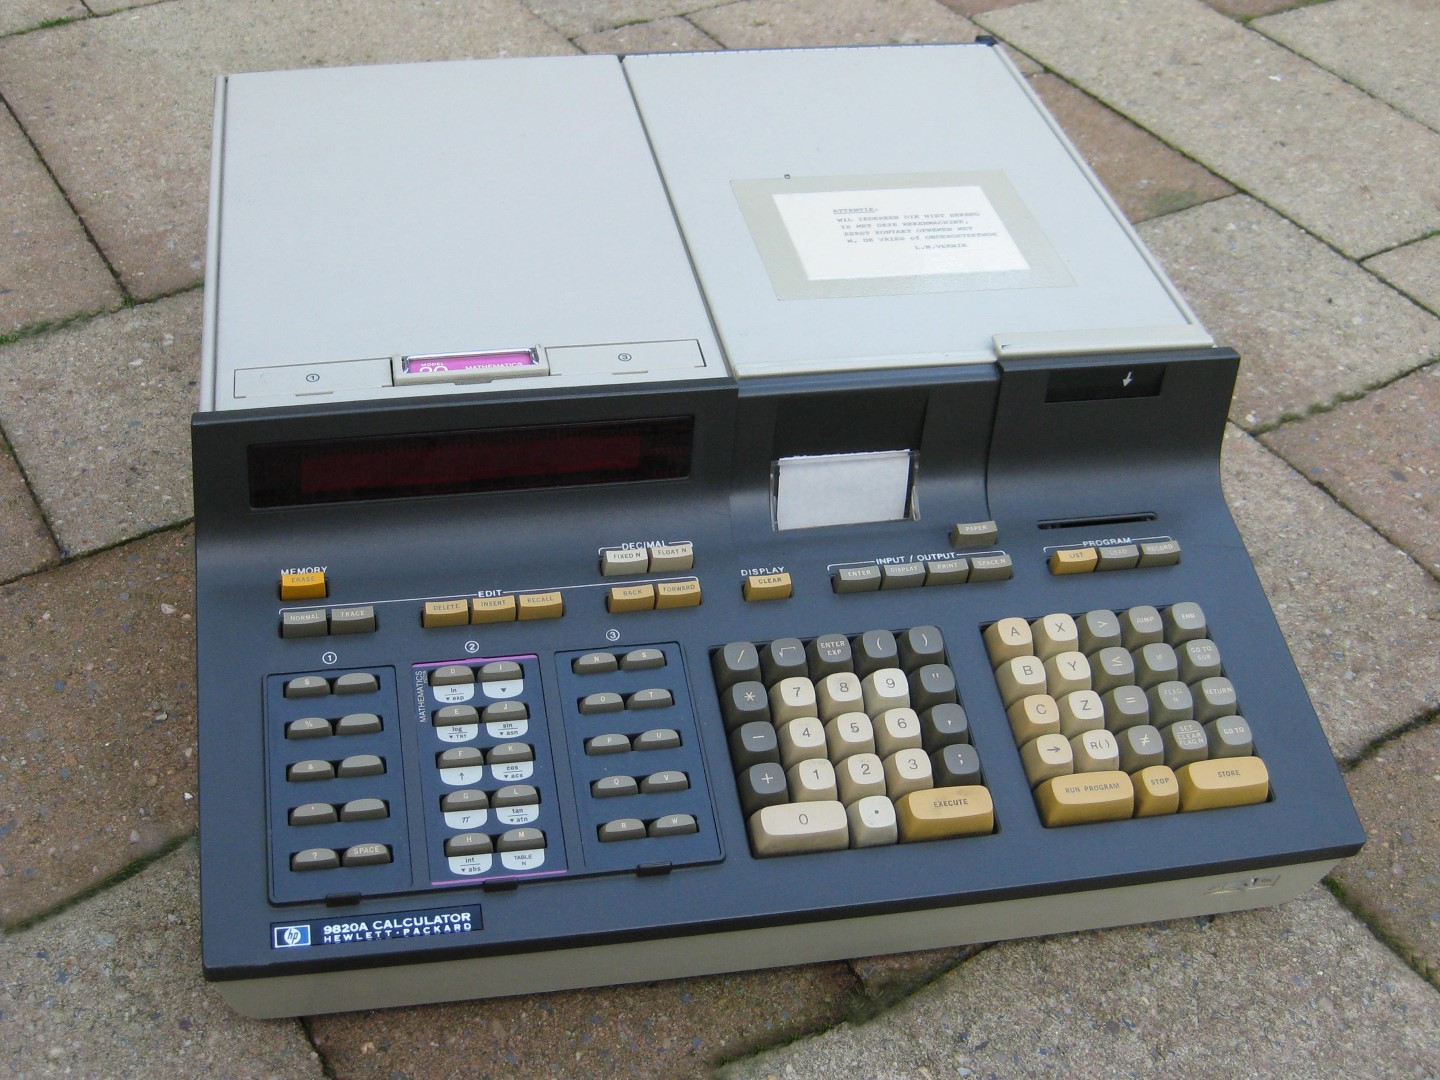 HP9820A calculator